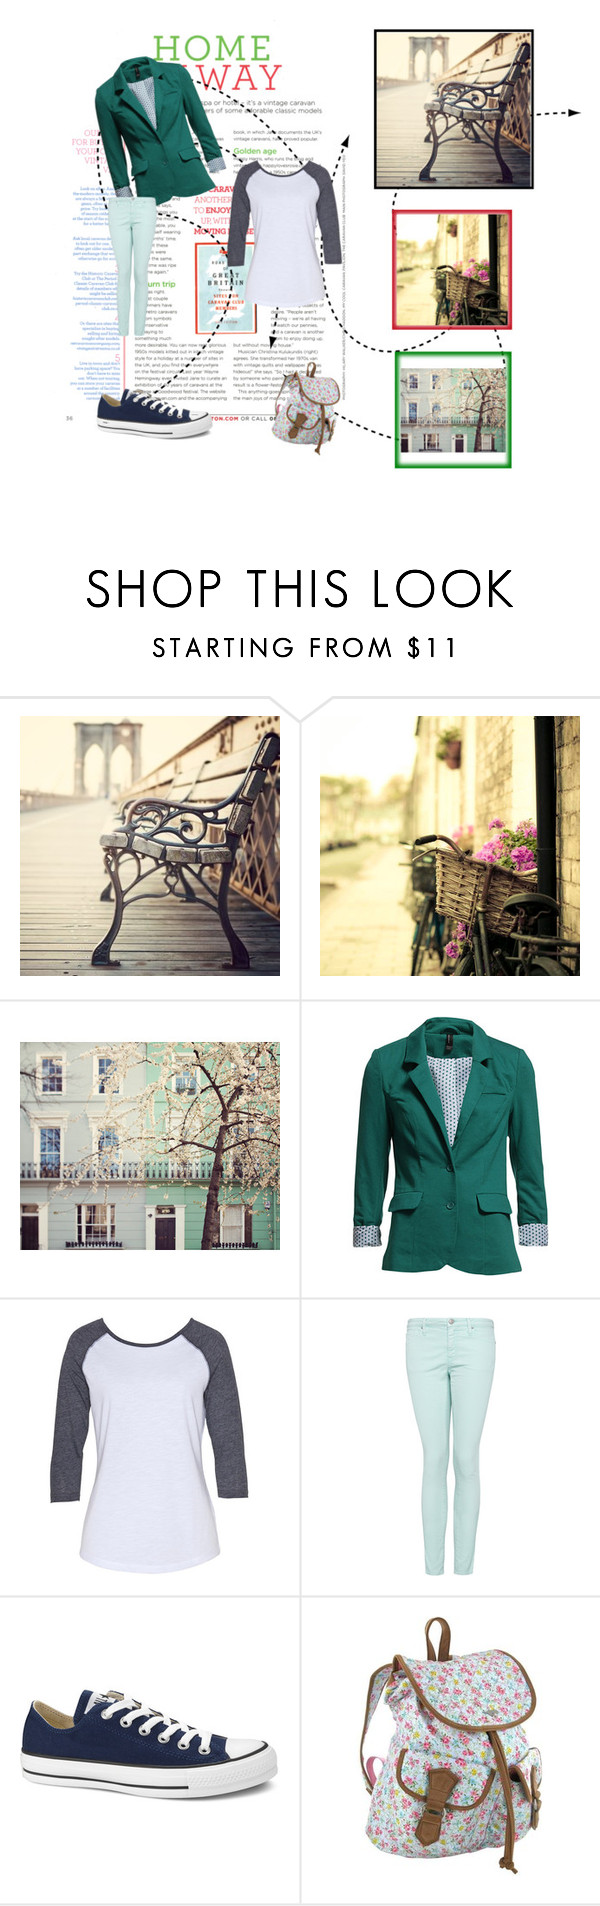 """home & away"" by adeilizawardhani ❤ liked on Polyvore featuring French Country, Vero Moda, MANGO, Converse and Rocket Dog"